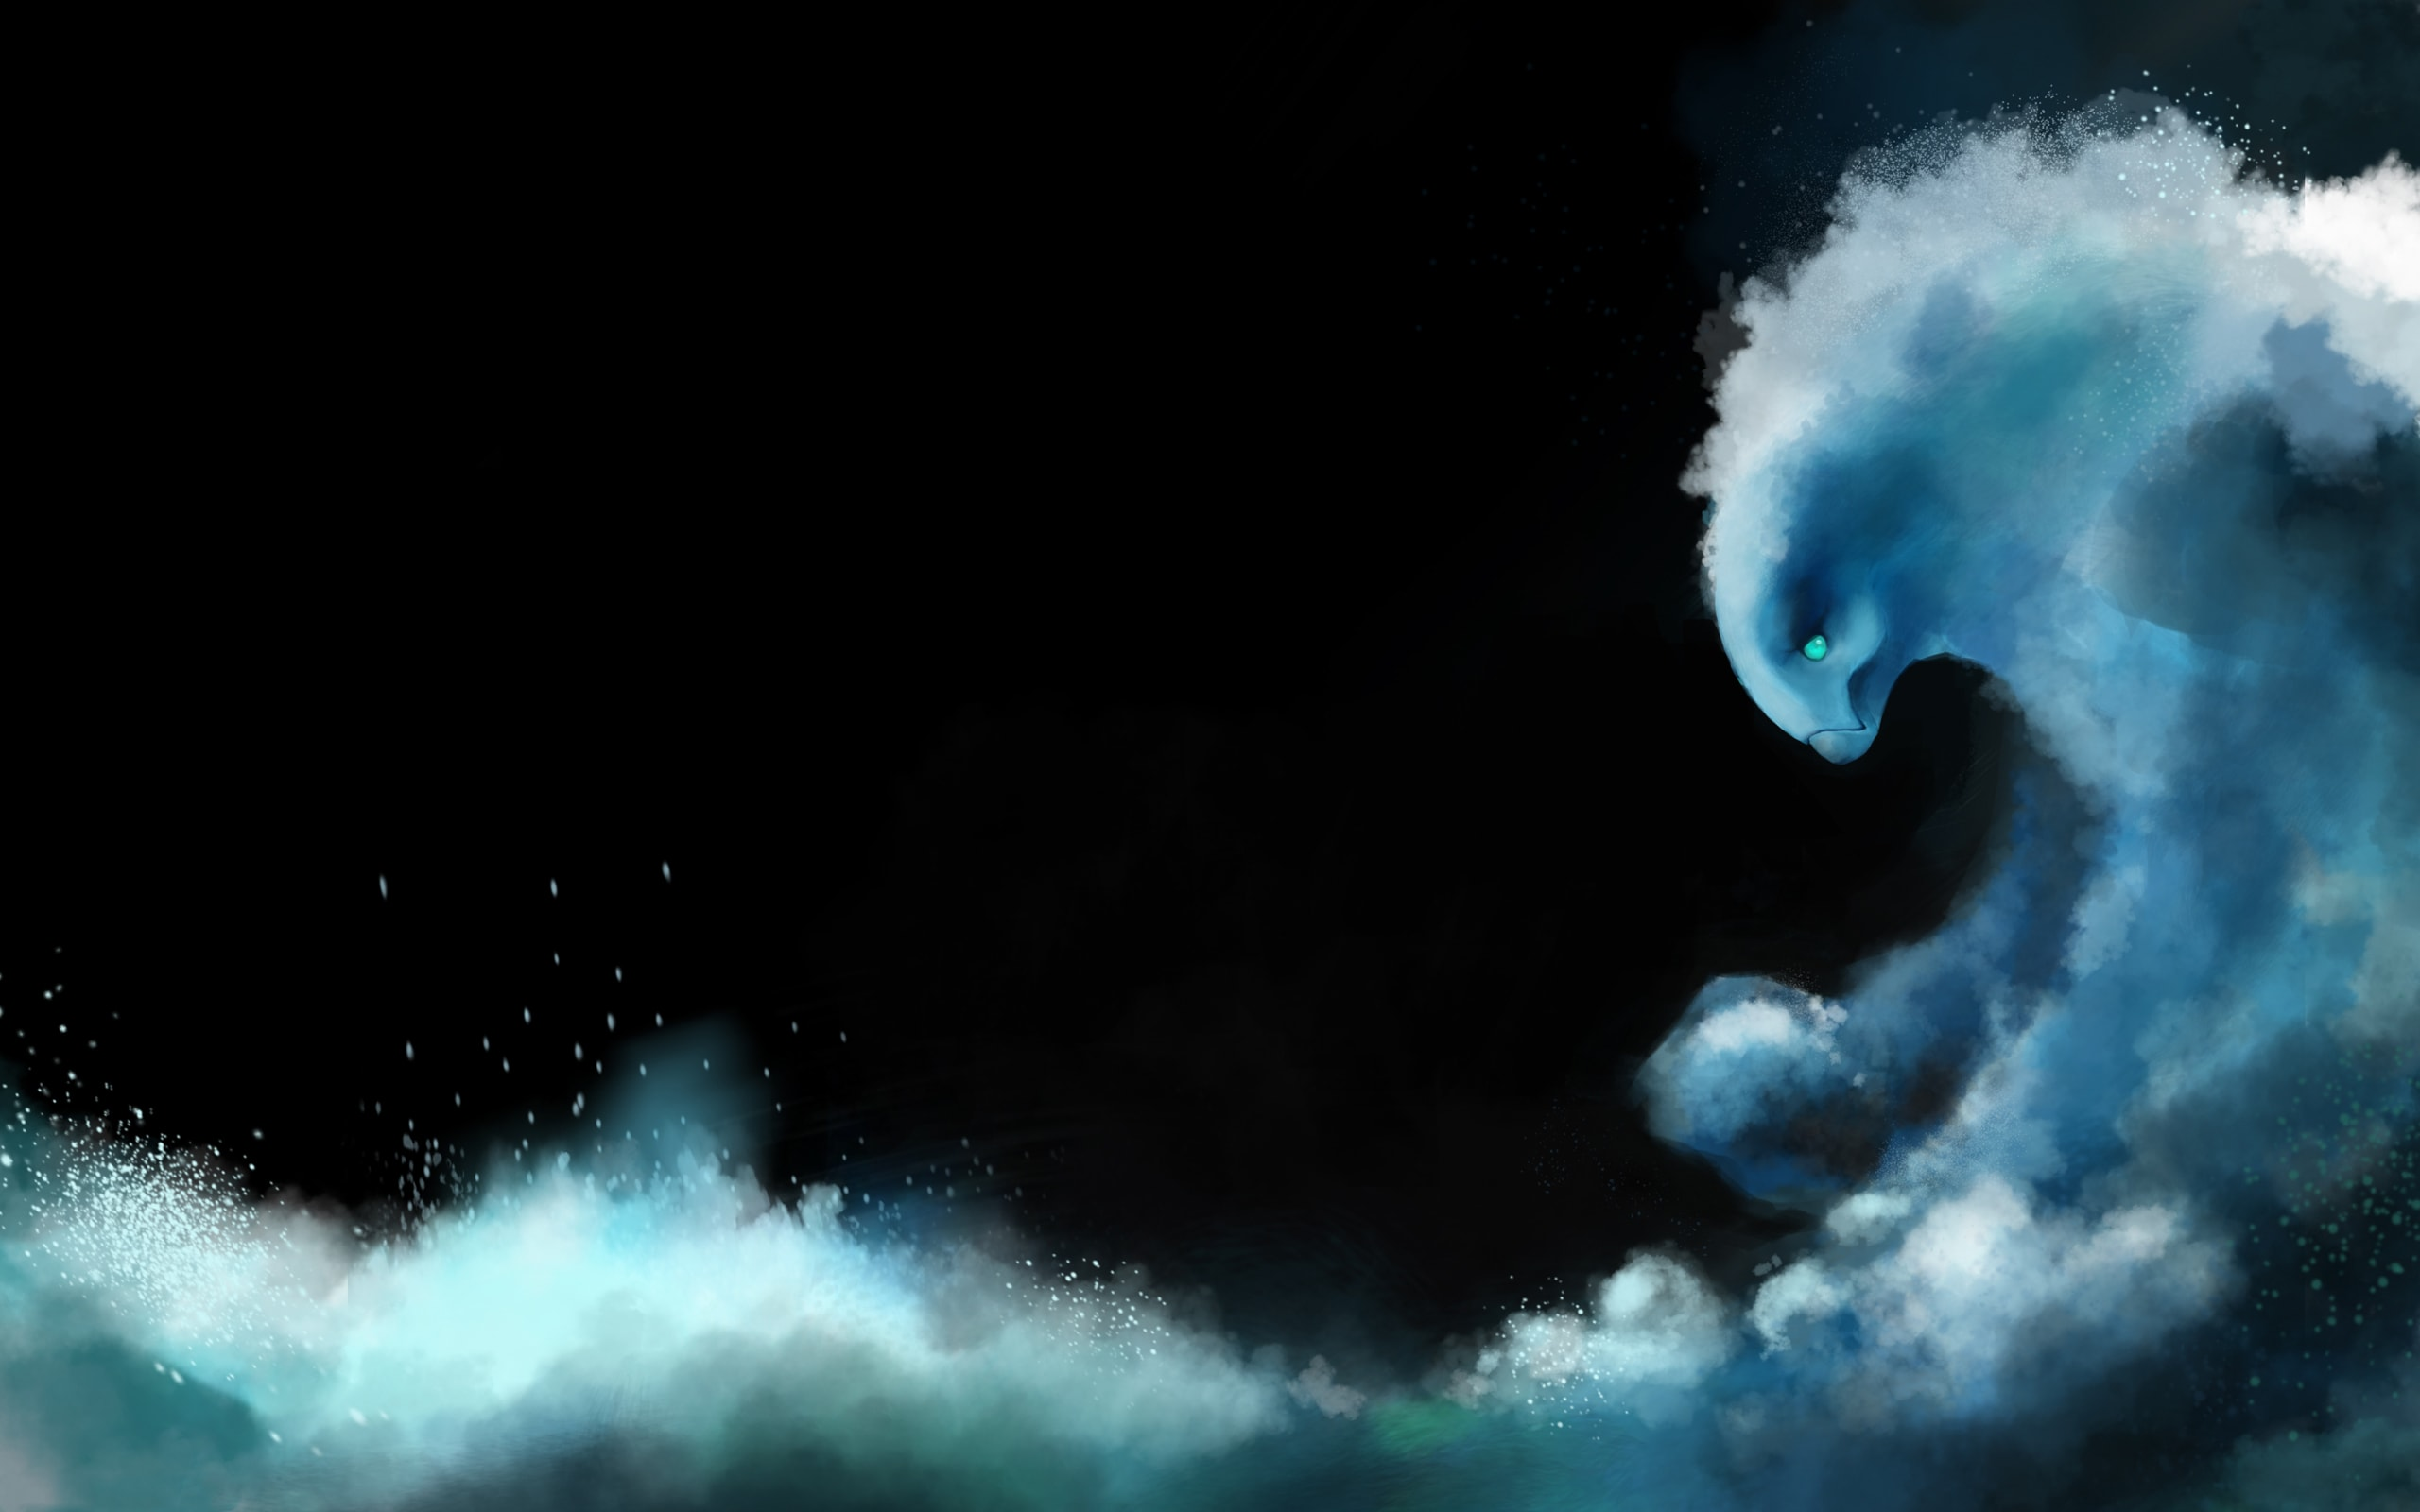 Dota2 : Morphling Background